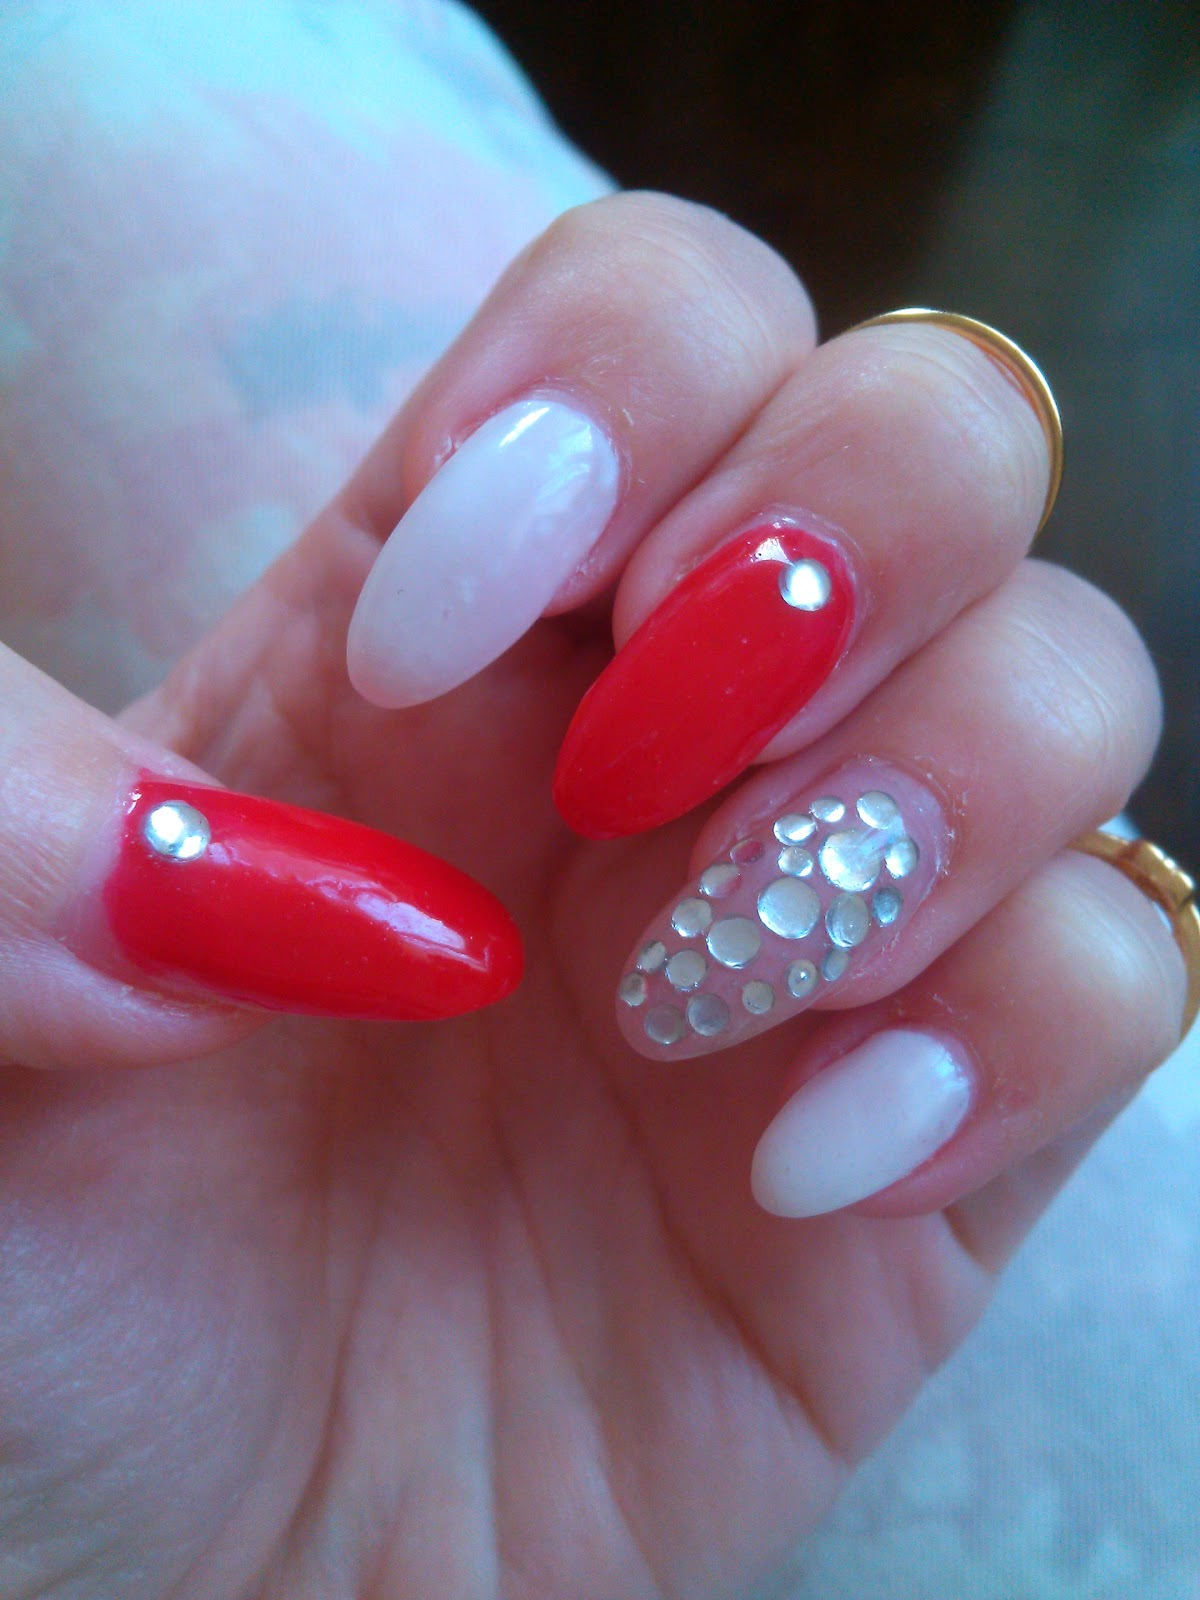 stiletto nails, red and white stiletto nails, stiletto nails with rhinestones,